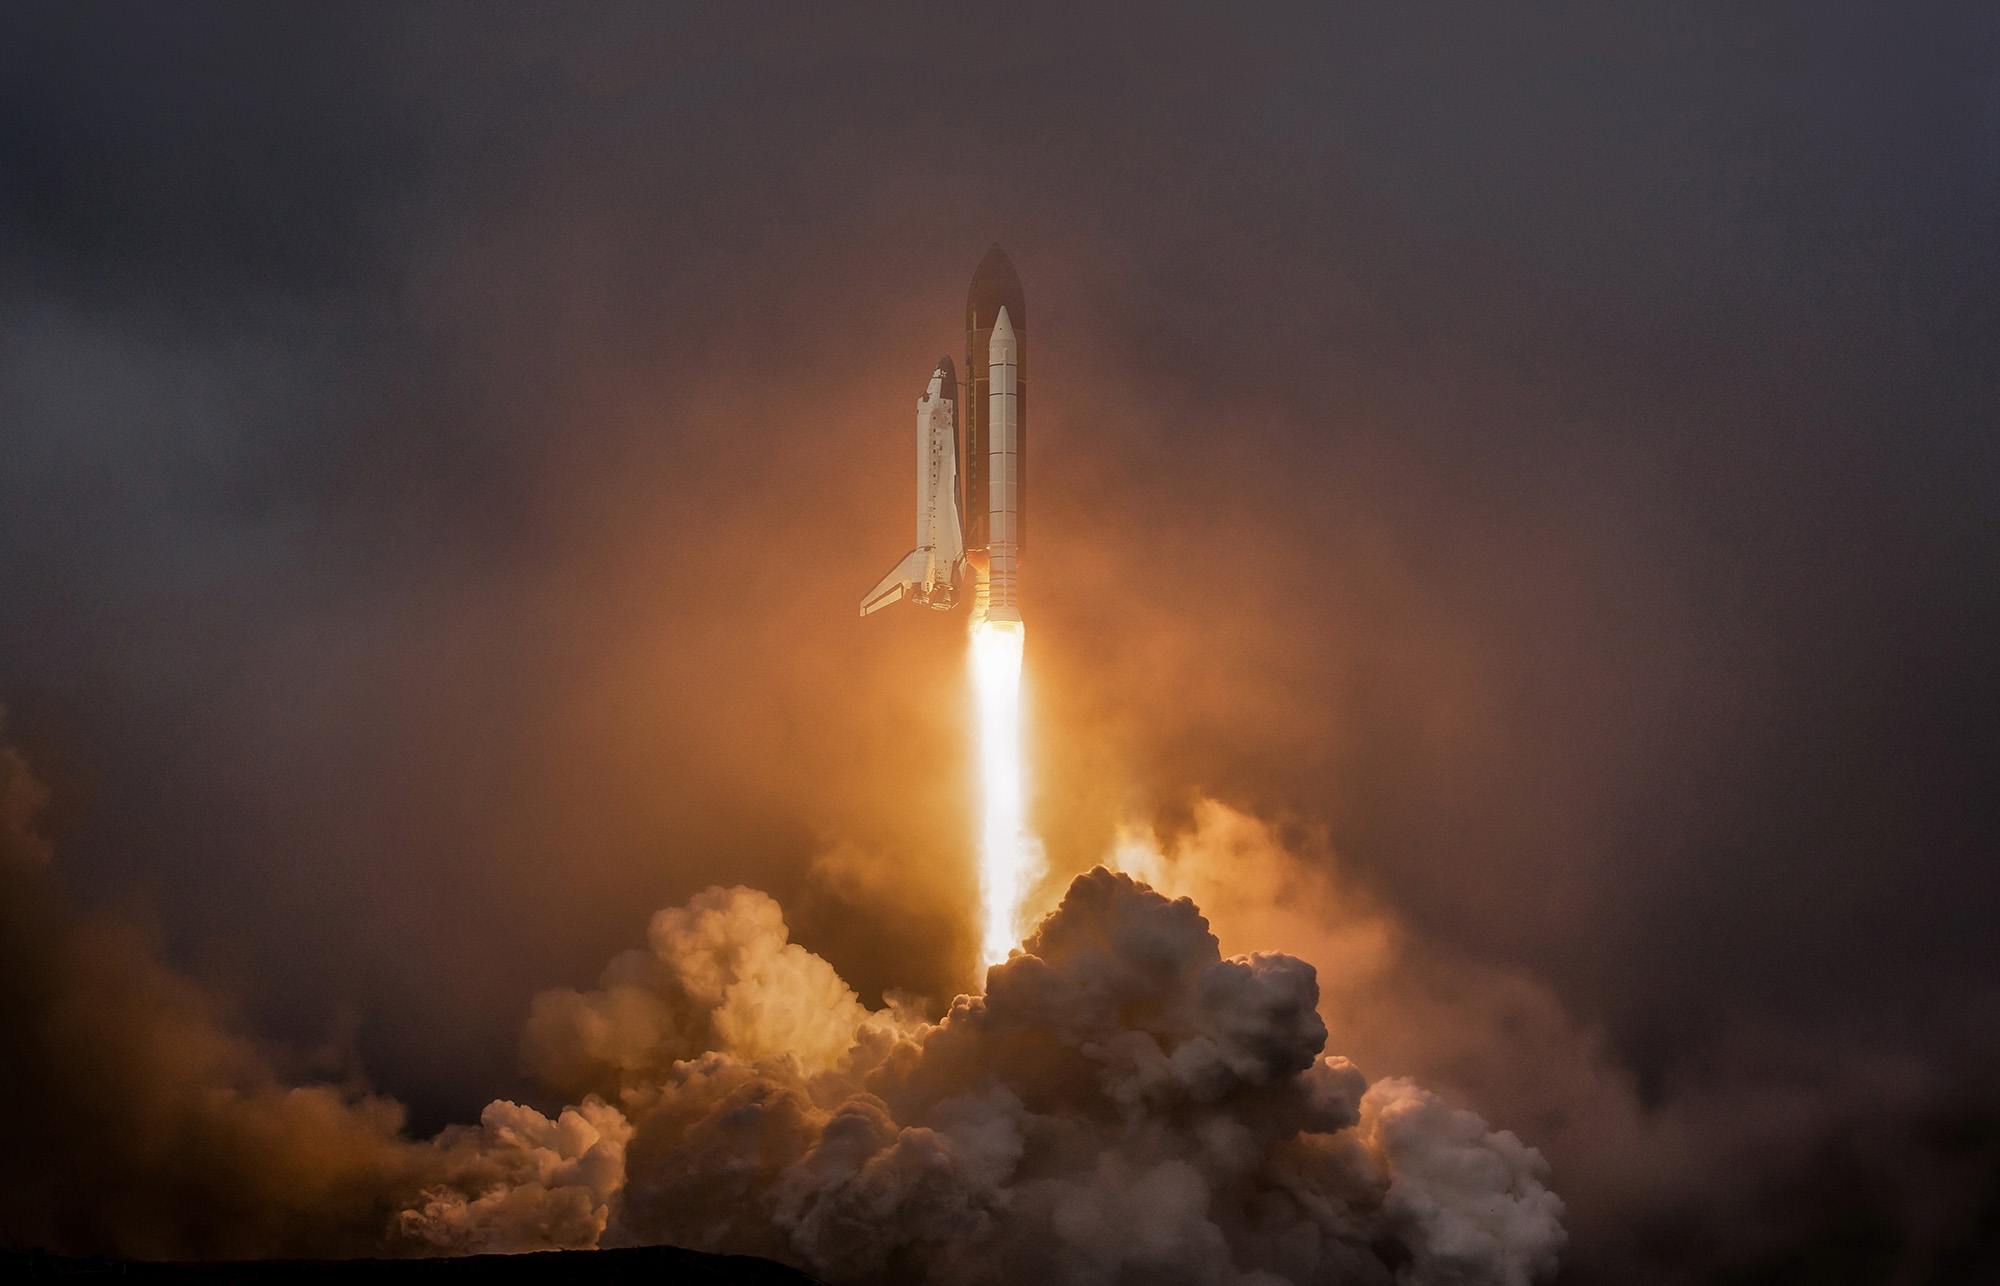 The Space Shuttle: A First in Spacecraft Reusability – Part II